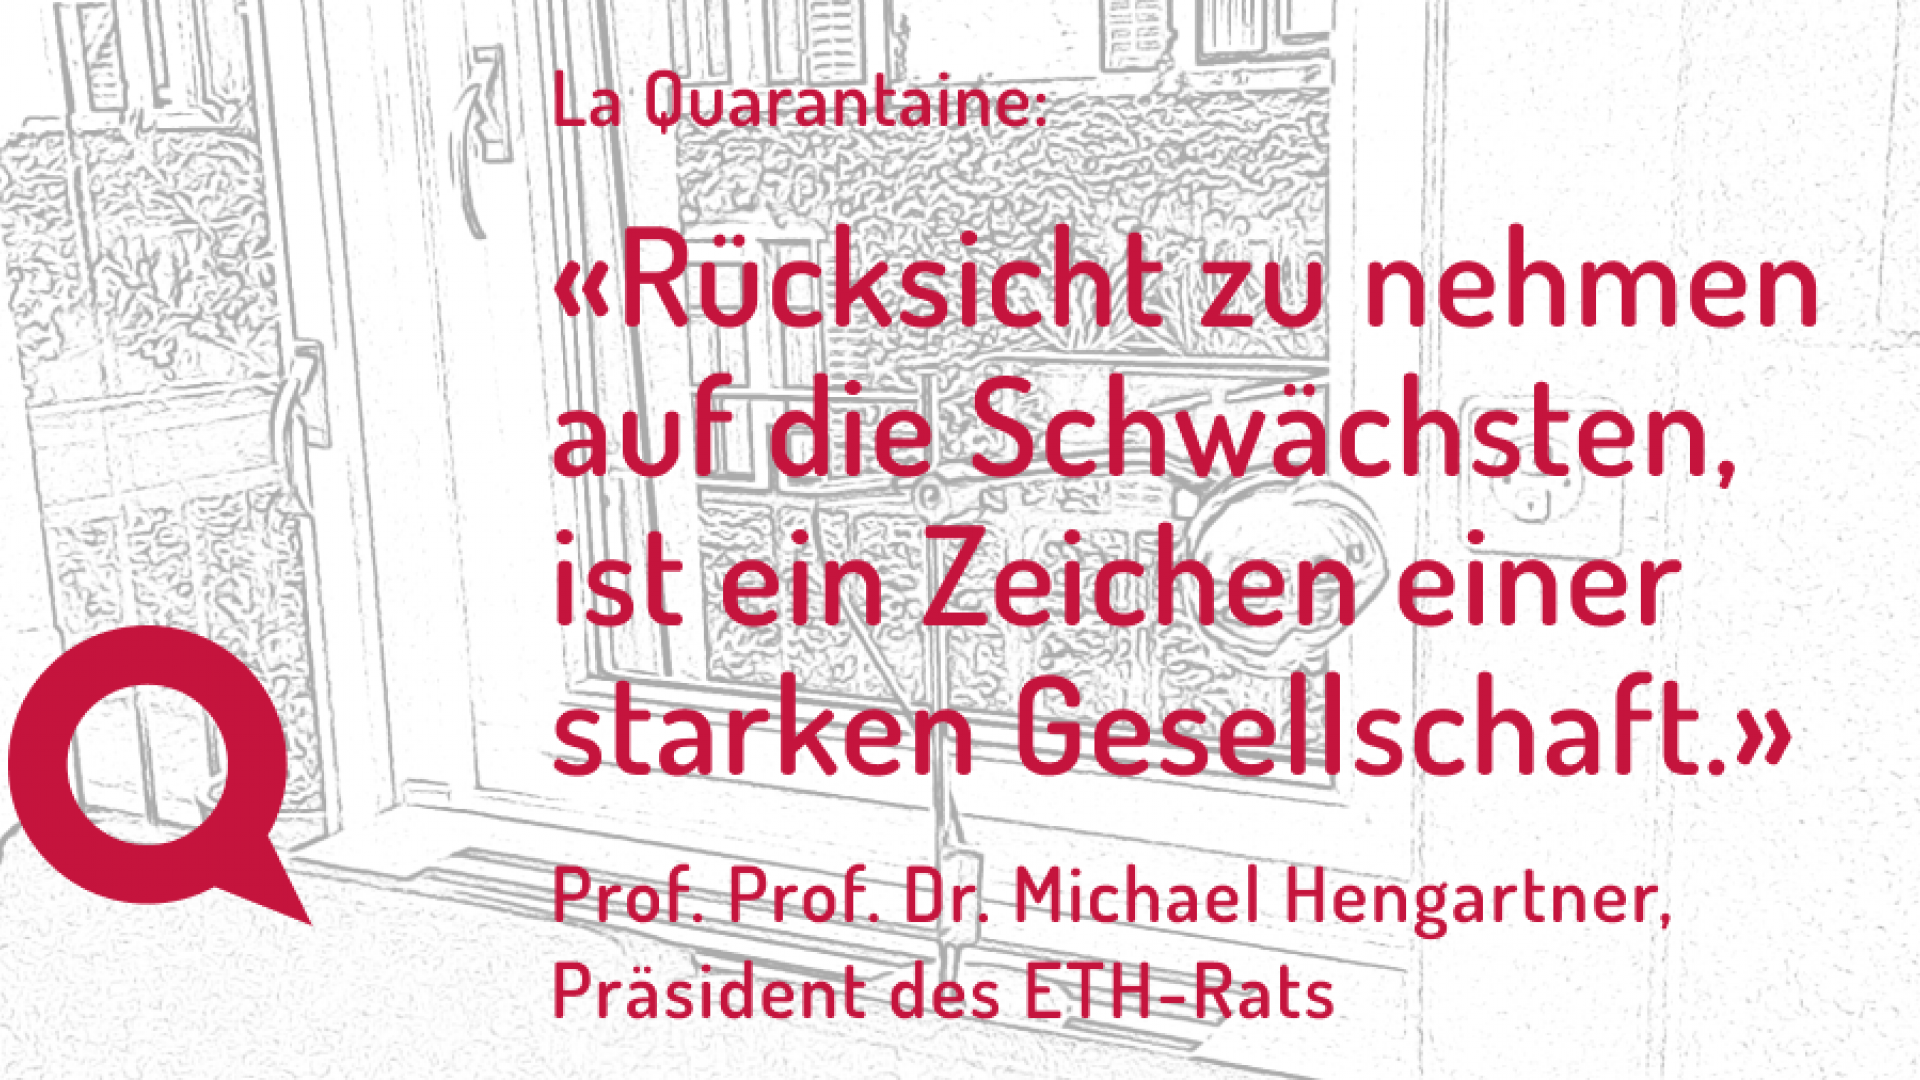 Header Quarantaine Hengartner Quote